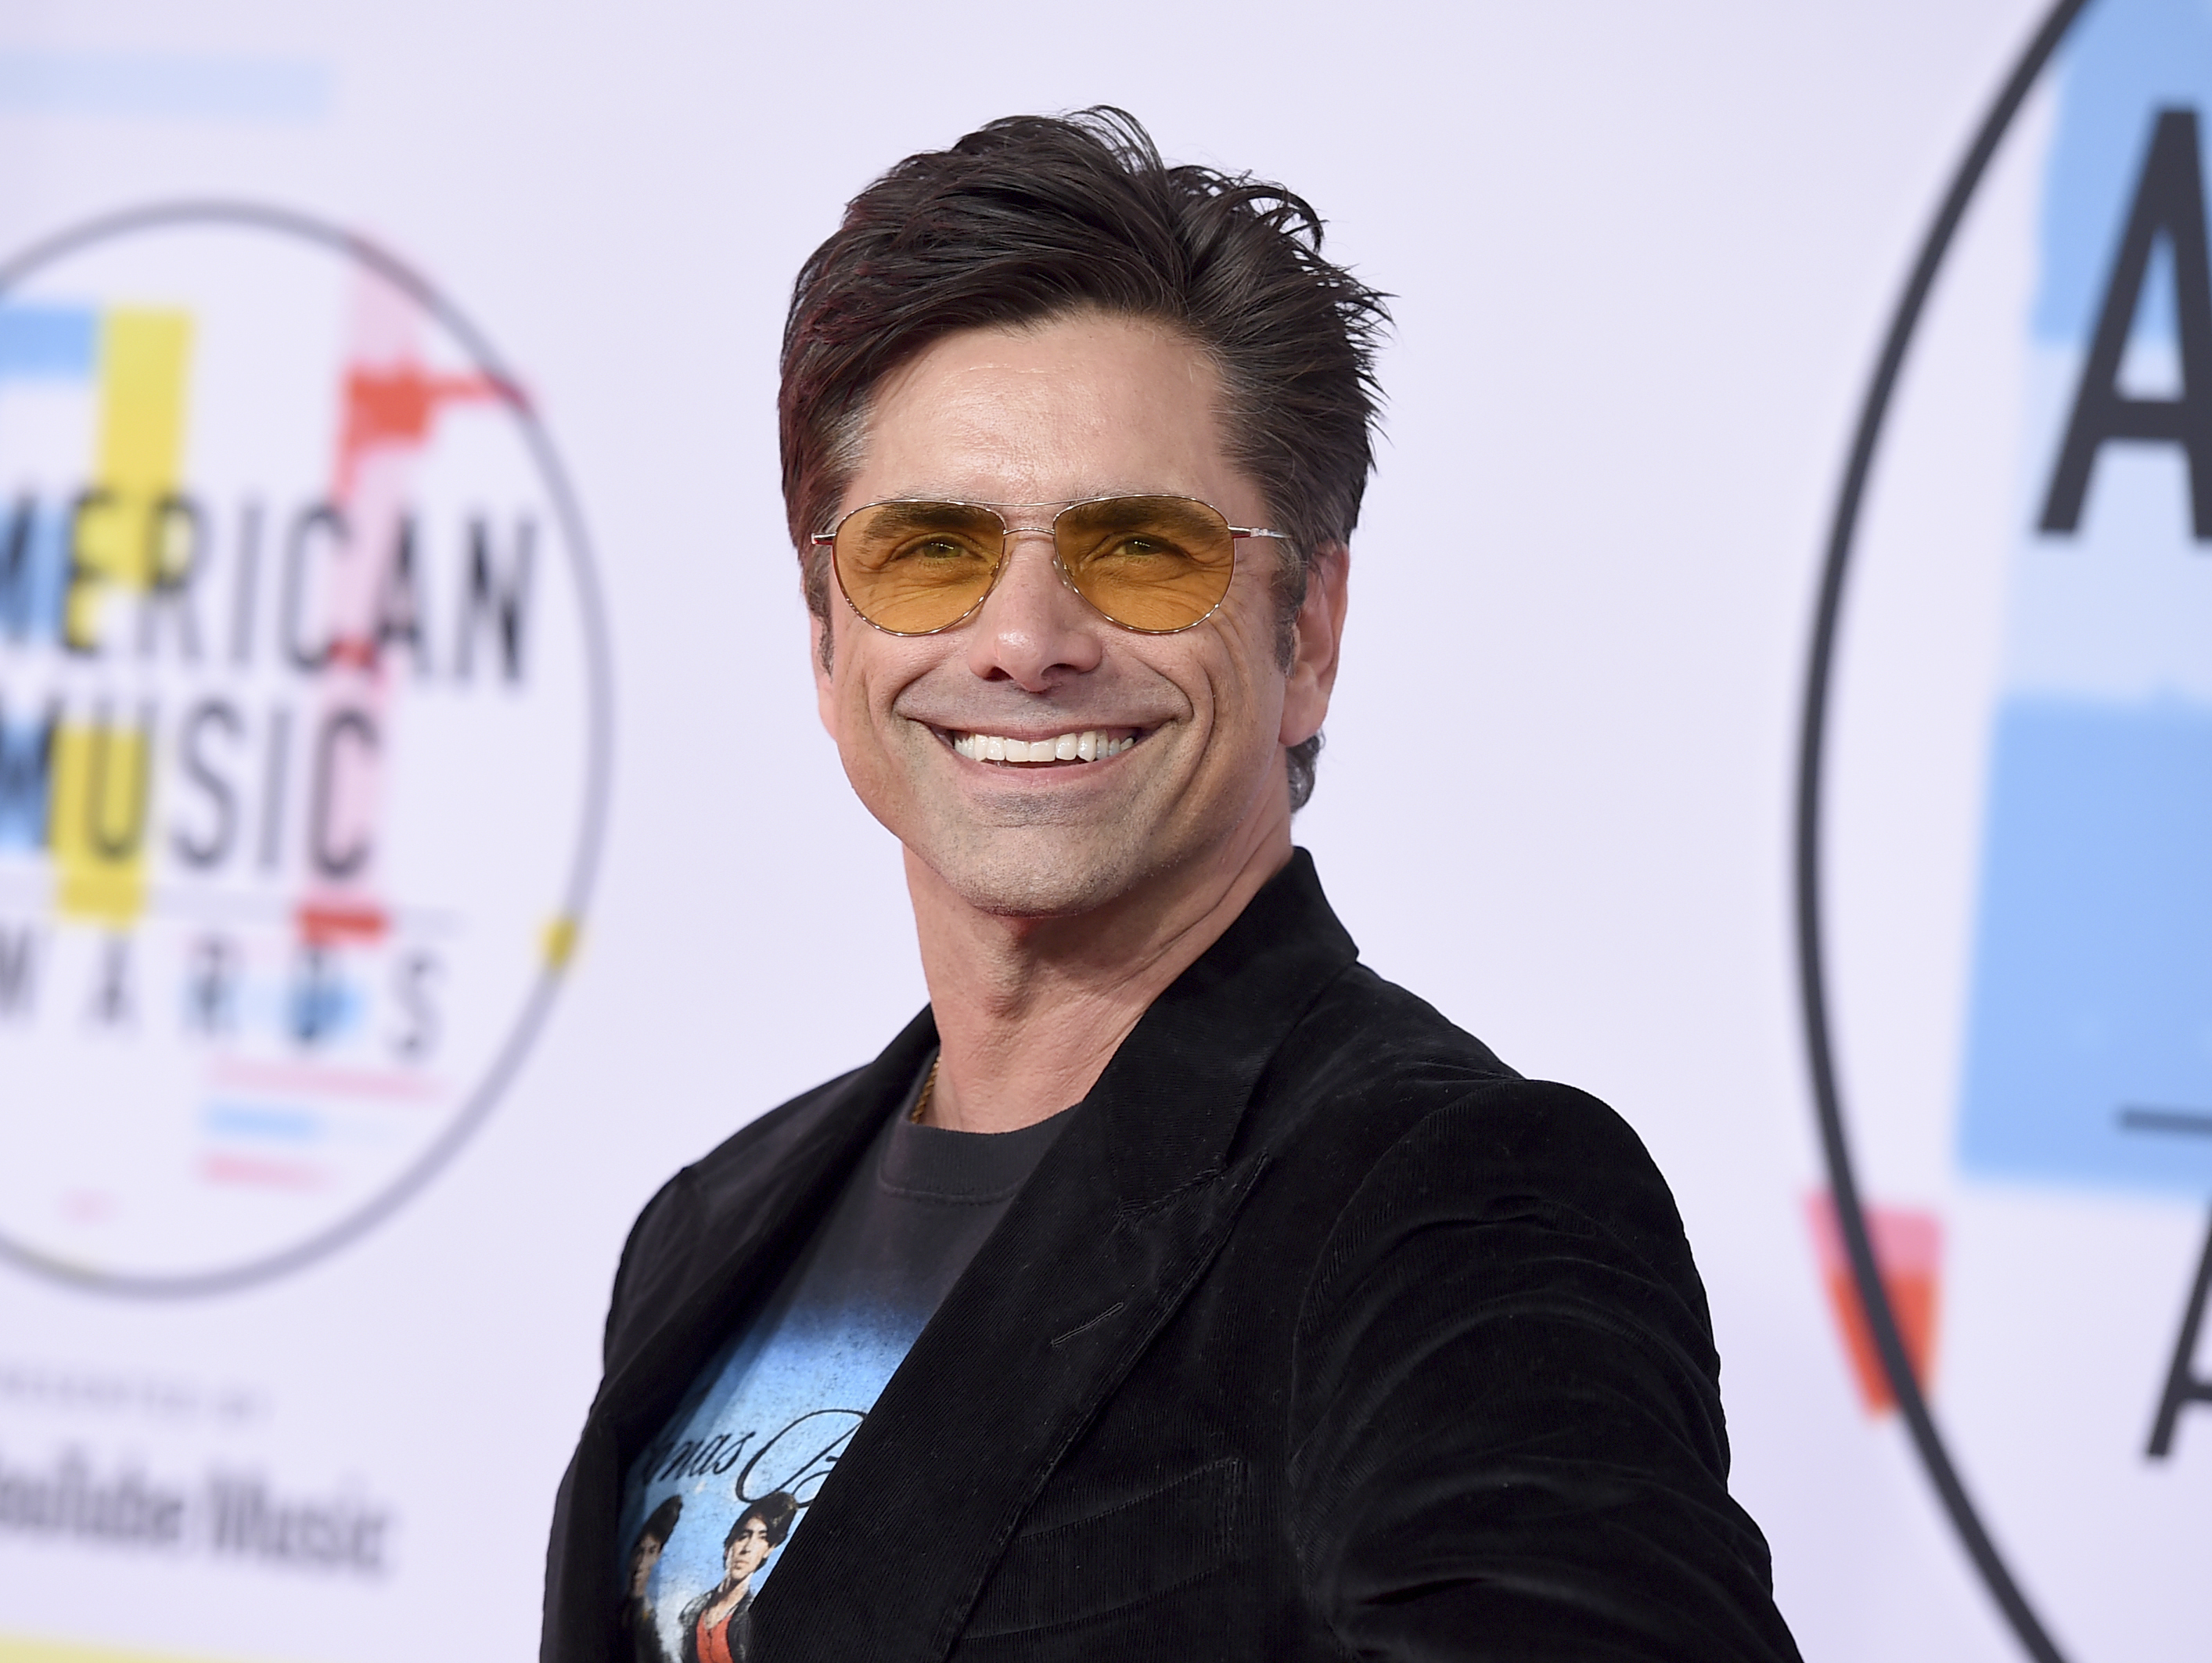 "<div class=""meta image-caption""><div class=""origin-logo origin-image none""><span>none</span></div><span class=""caption-text"">John Stamos arrives at the American Music Awards on Tuesday, Oct. 9, 2018, at the Microsoft Theater in Los Angeles. (Jordan Strauss/Invision/AP)</span></div>"